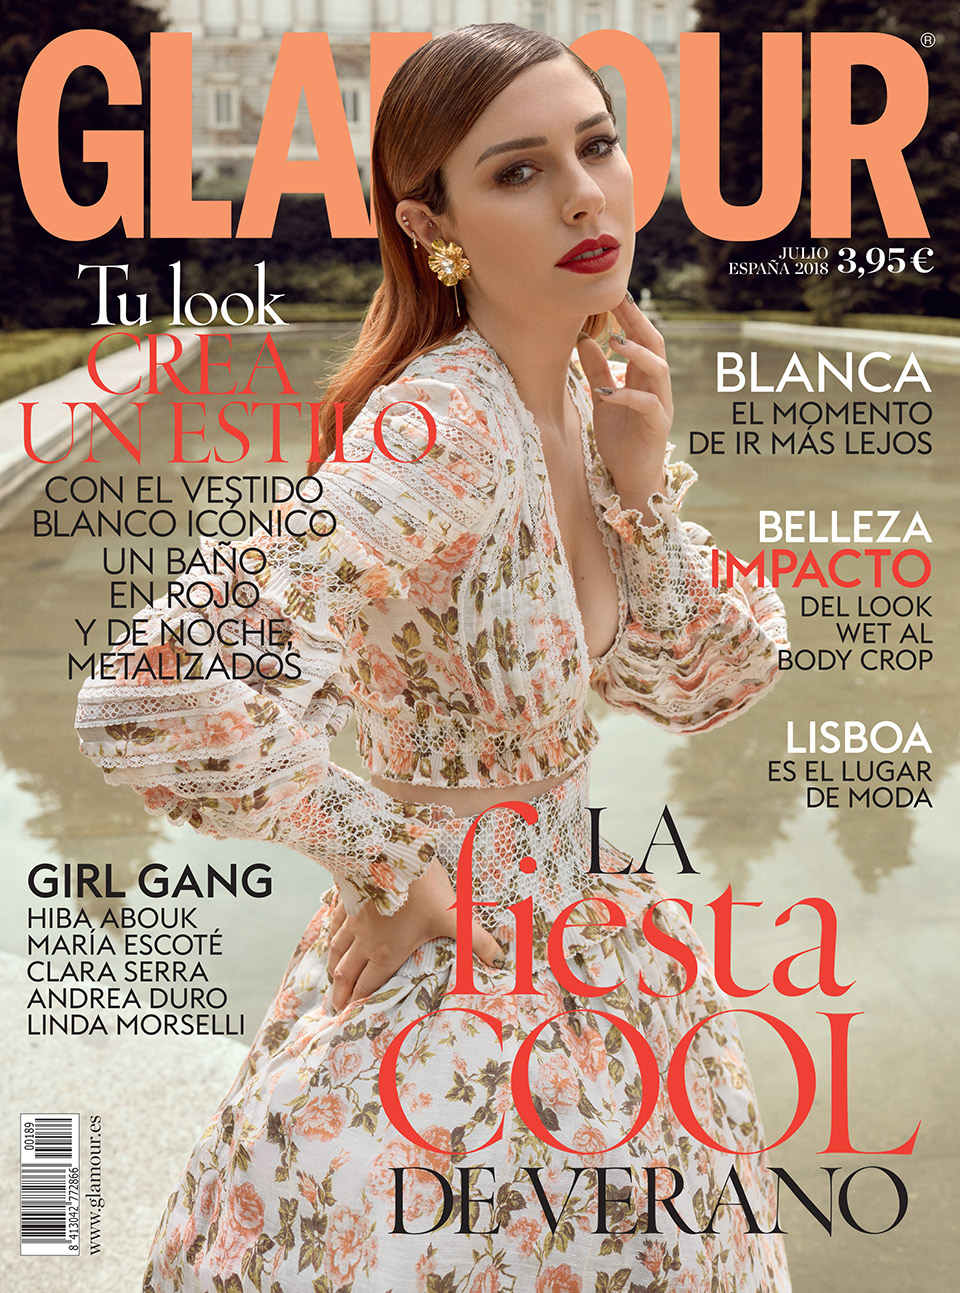 GLAMOUR – HAIR & MAKE UP BY NATALIA BELDA